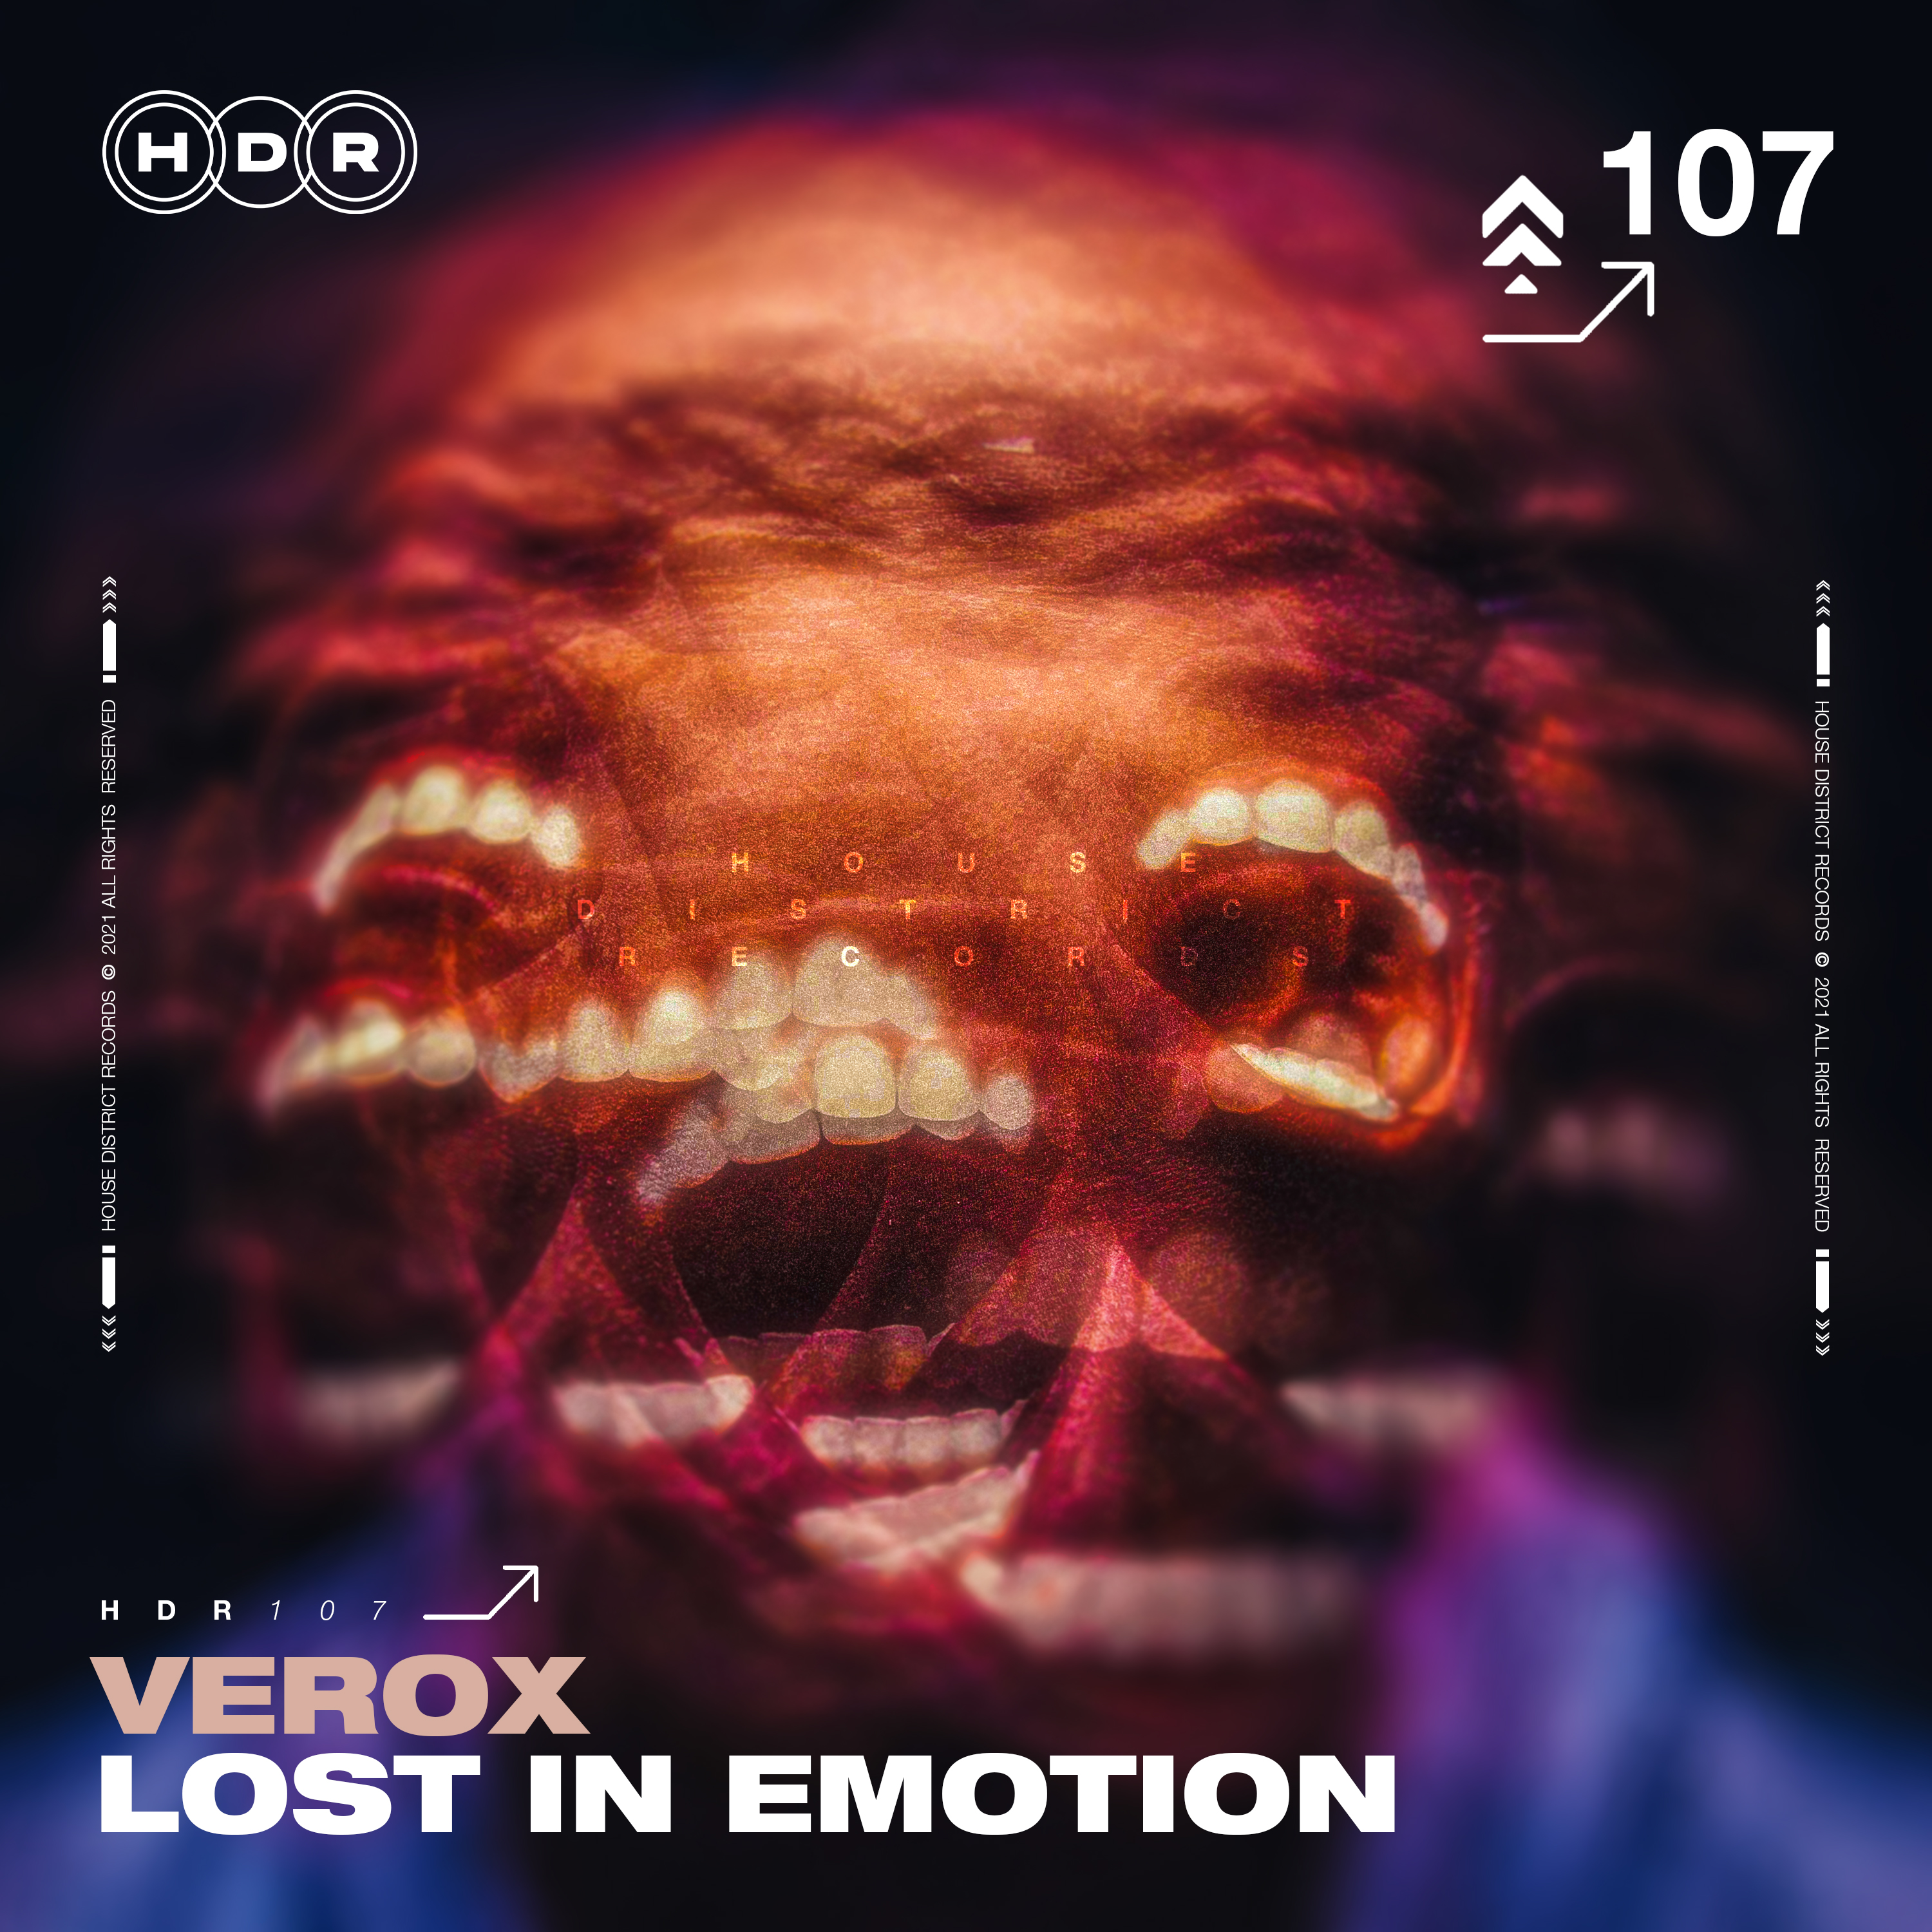 Verox - Lost In Emotion Image